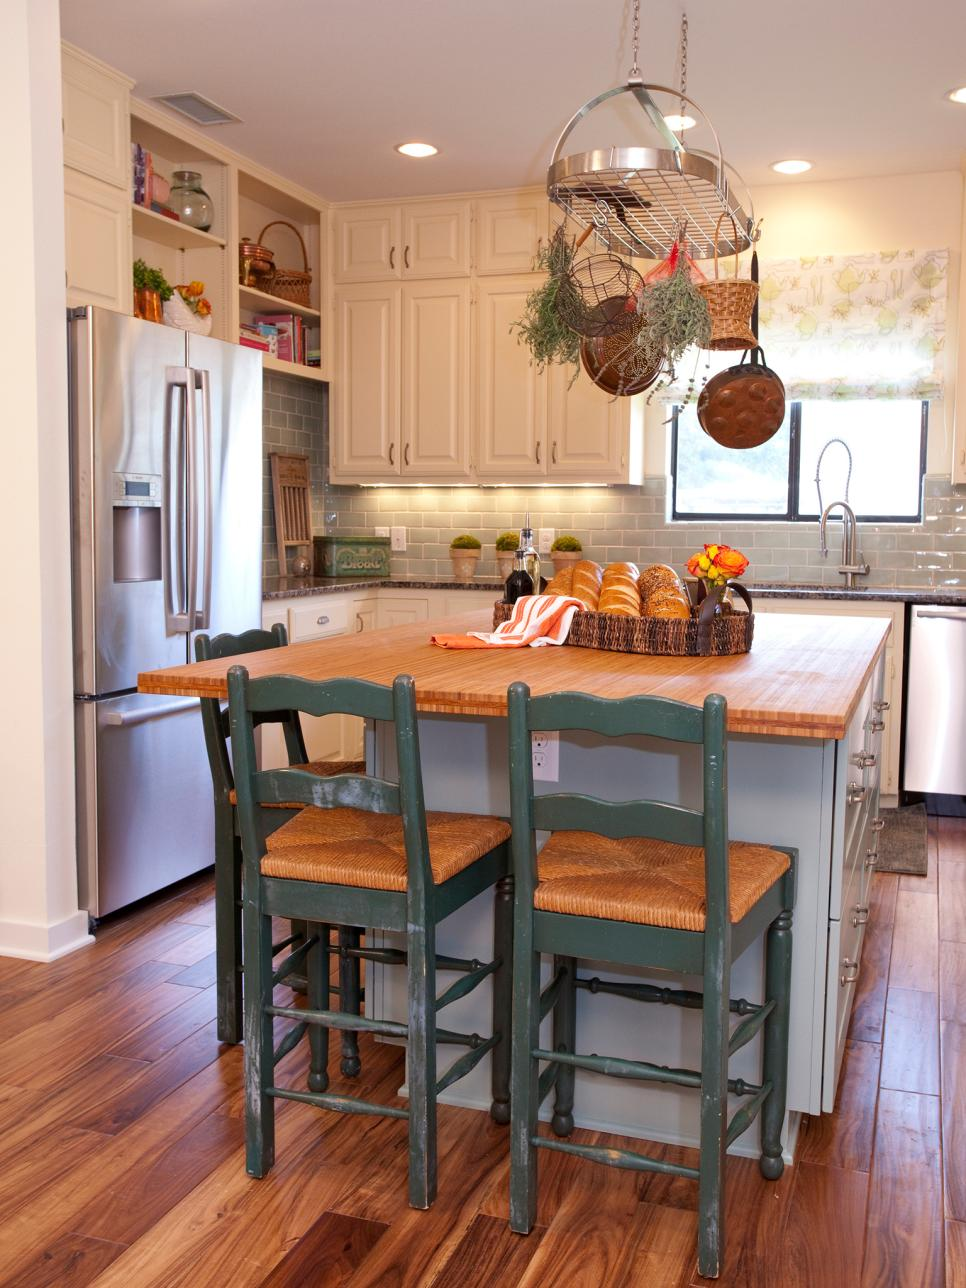 10 Kitchen And Home Decor Items Every 20 Something Needs: Pictures Of Small Kitchen Design Ideas From HGTV